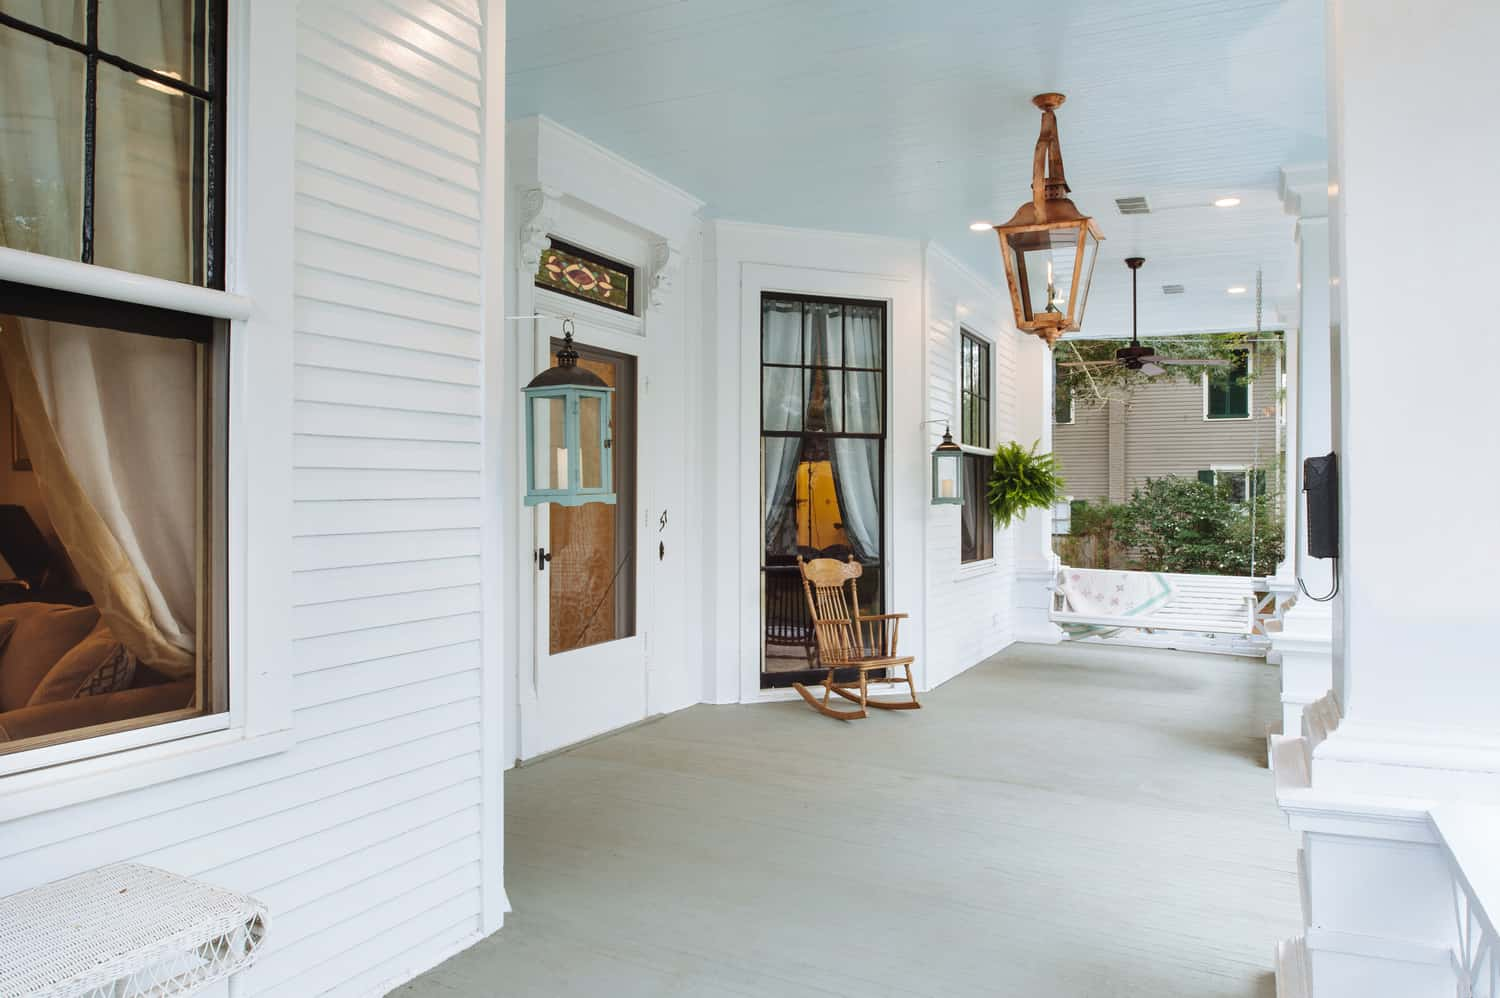 Front porch after some renovation